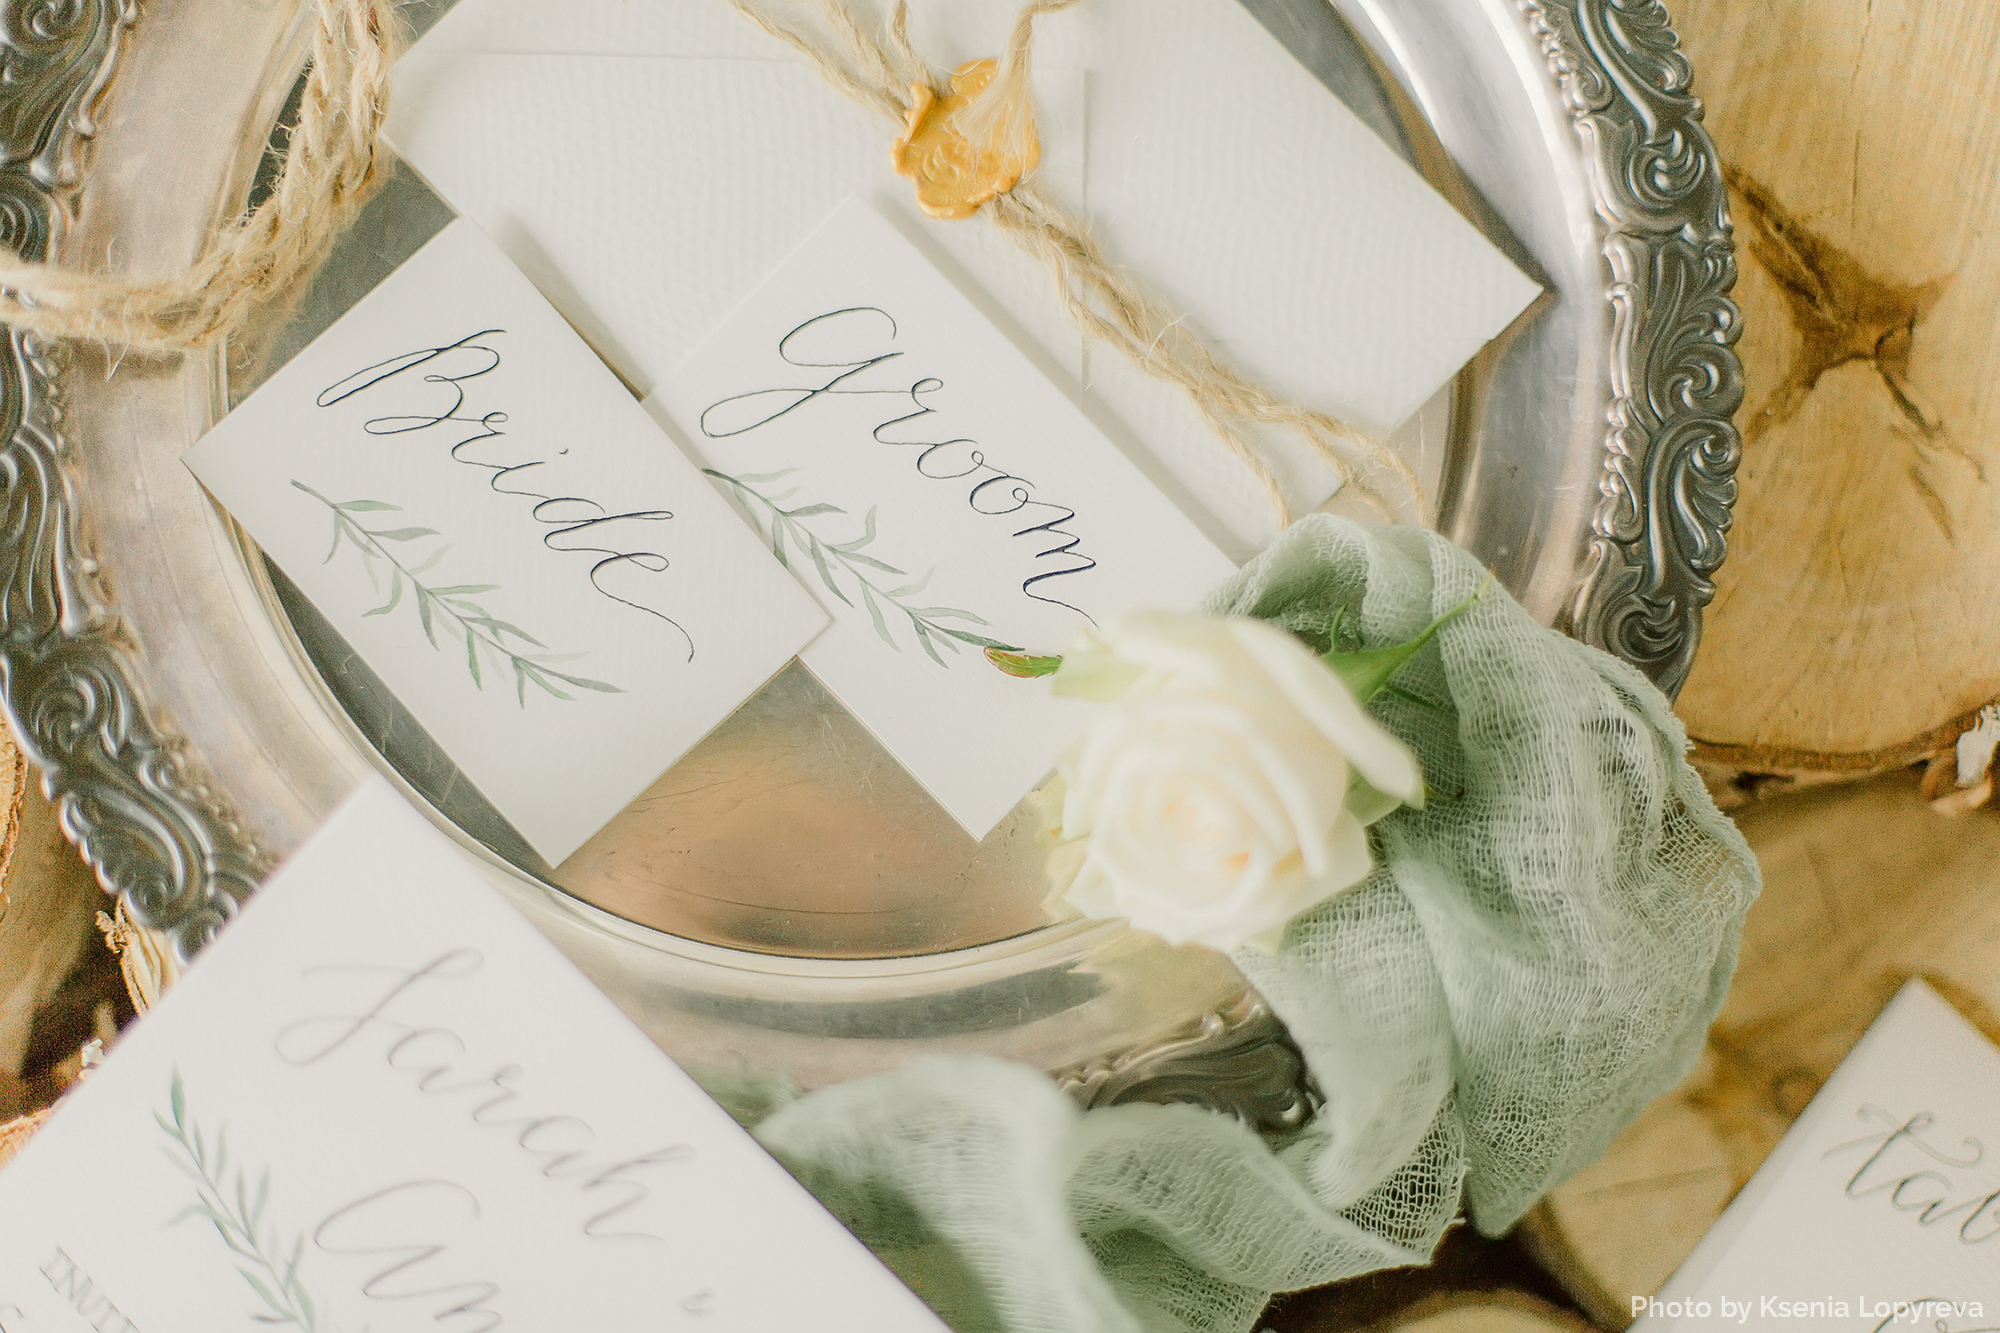 hand drawn place cards with calligraphy inscriptions item